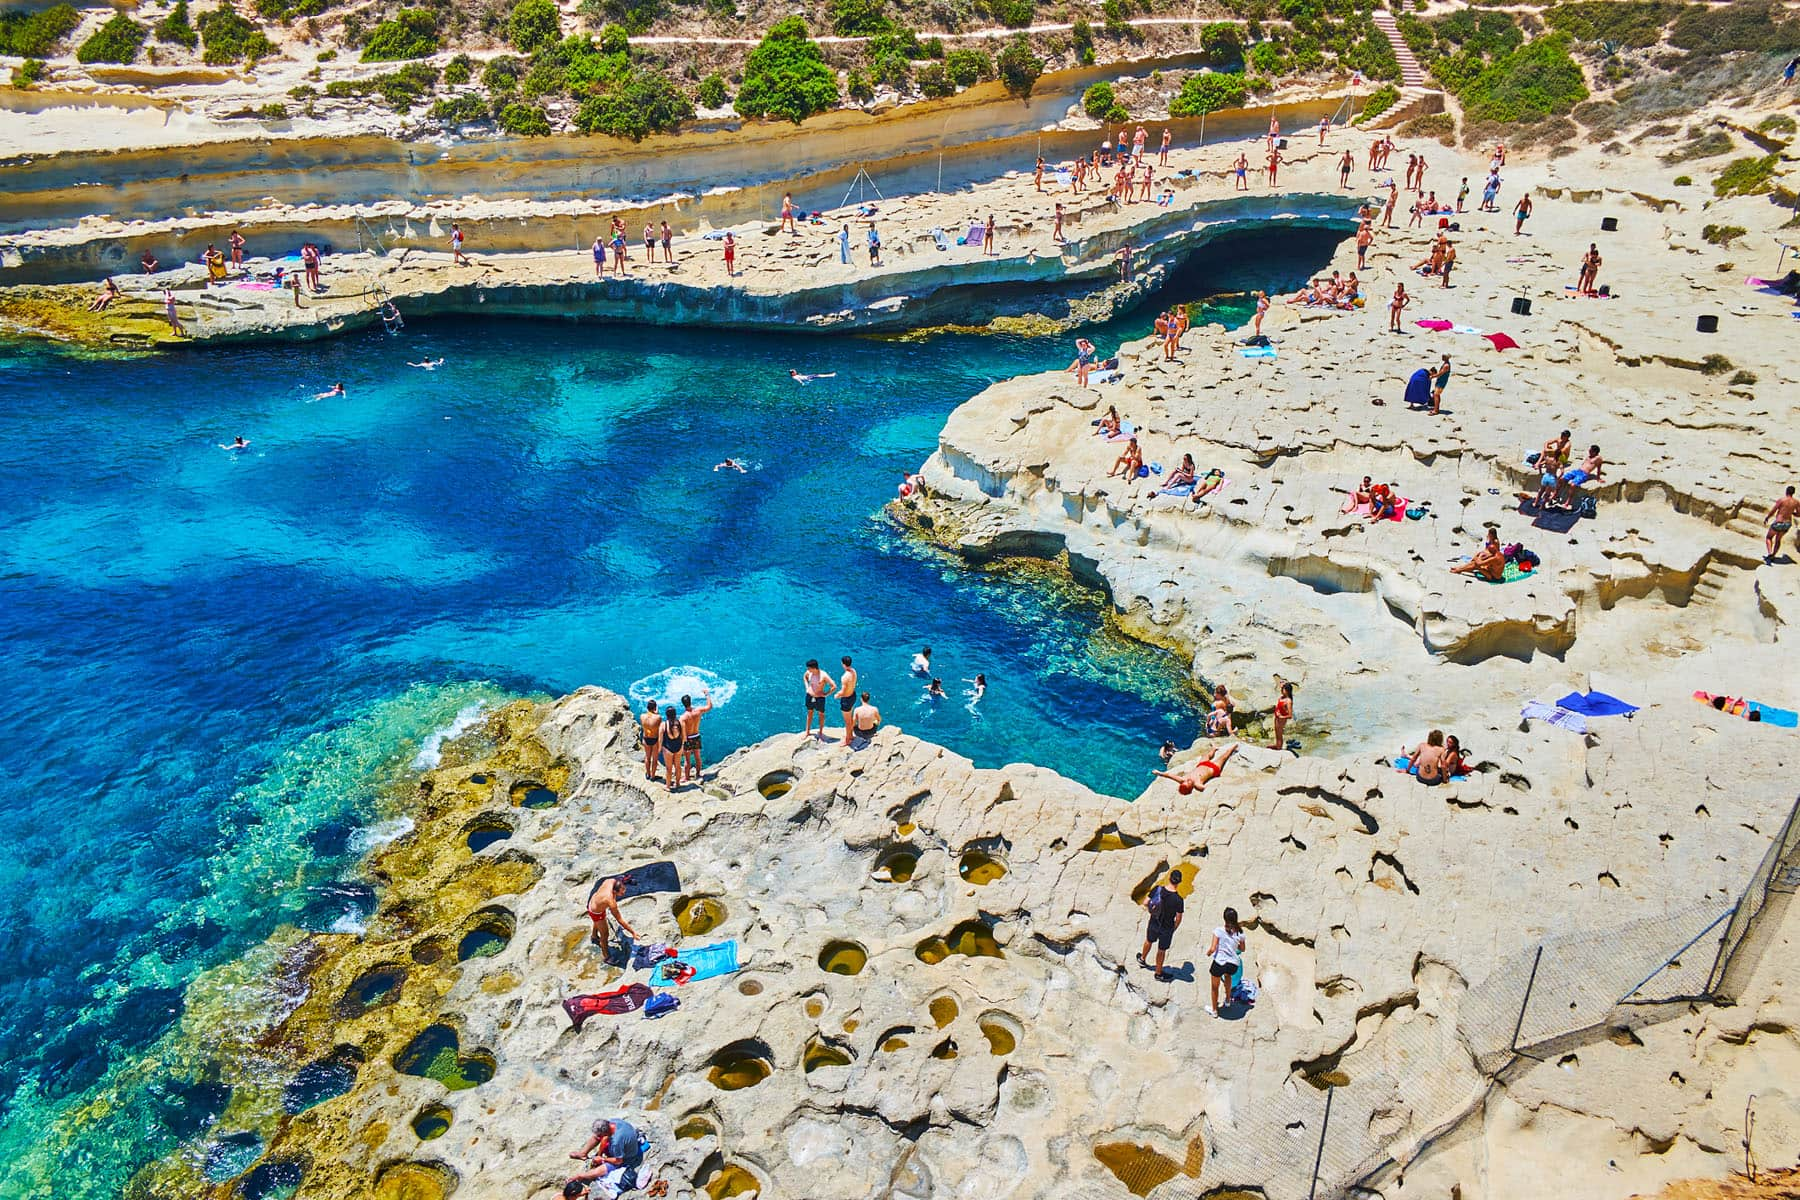 St. Peter's pool - Partenza Travel creates luxury travel packages to Malta